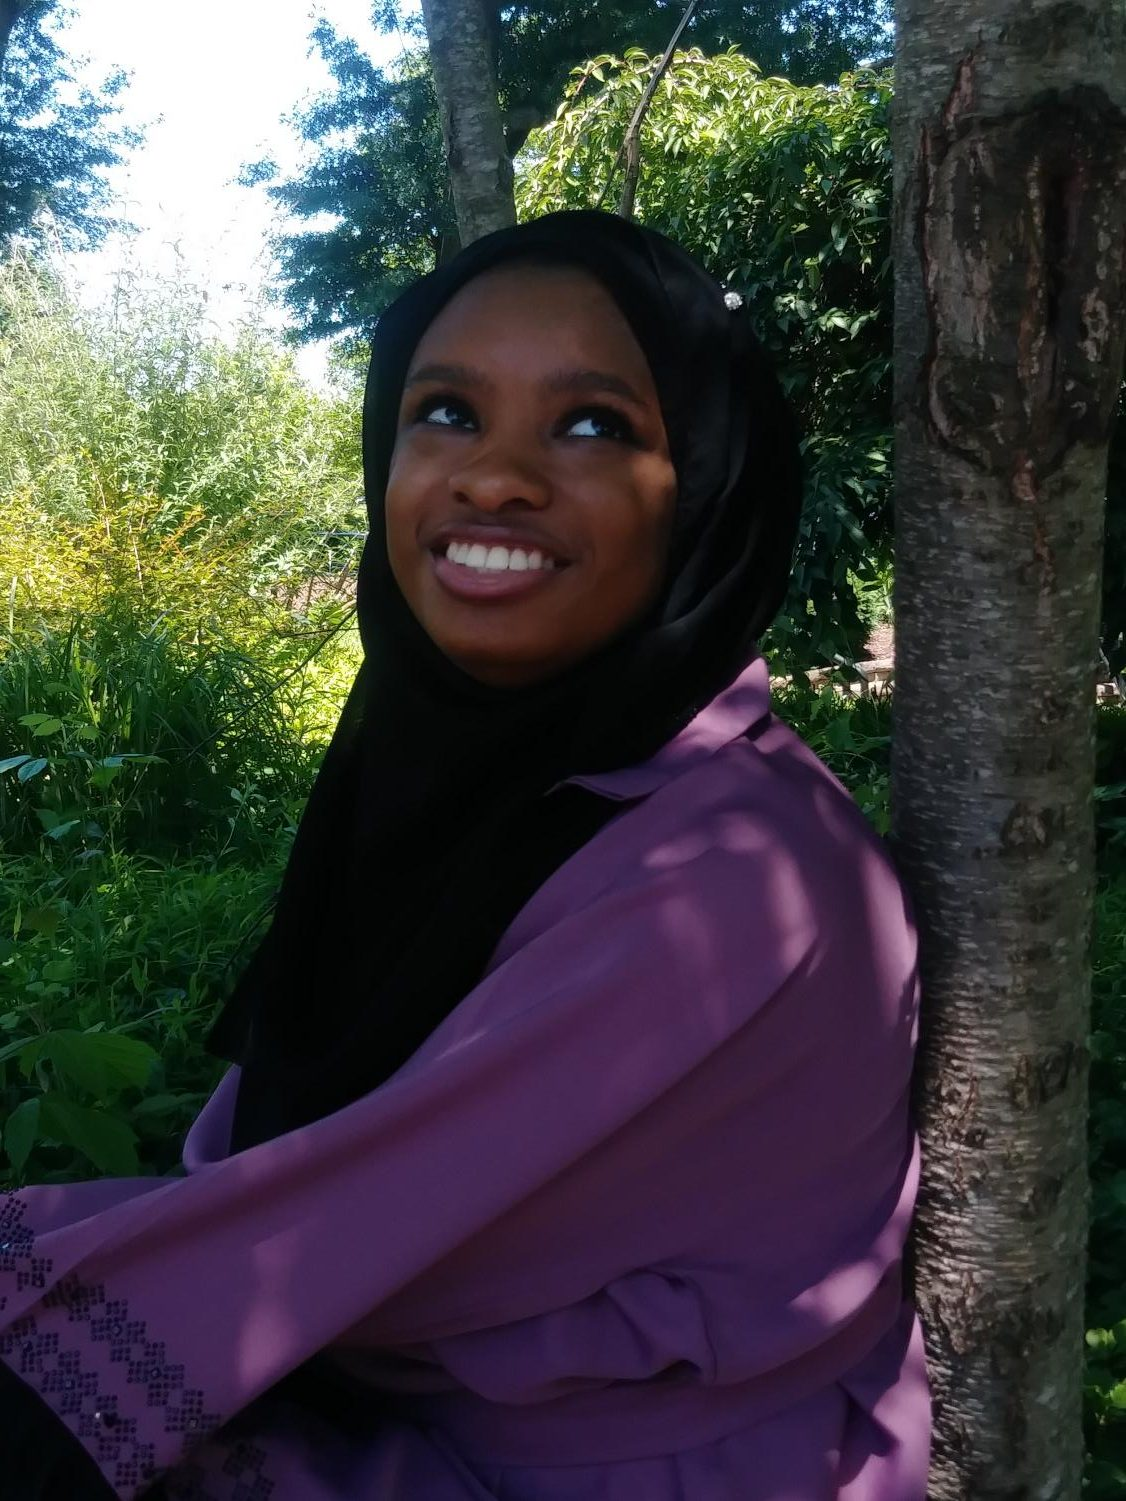 Associate Editor Aisha Sowe reflects on her journey through newspaper and high school